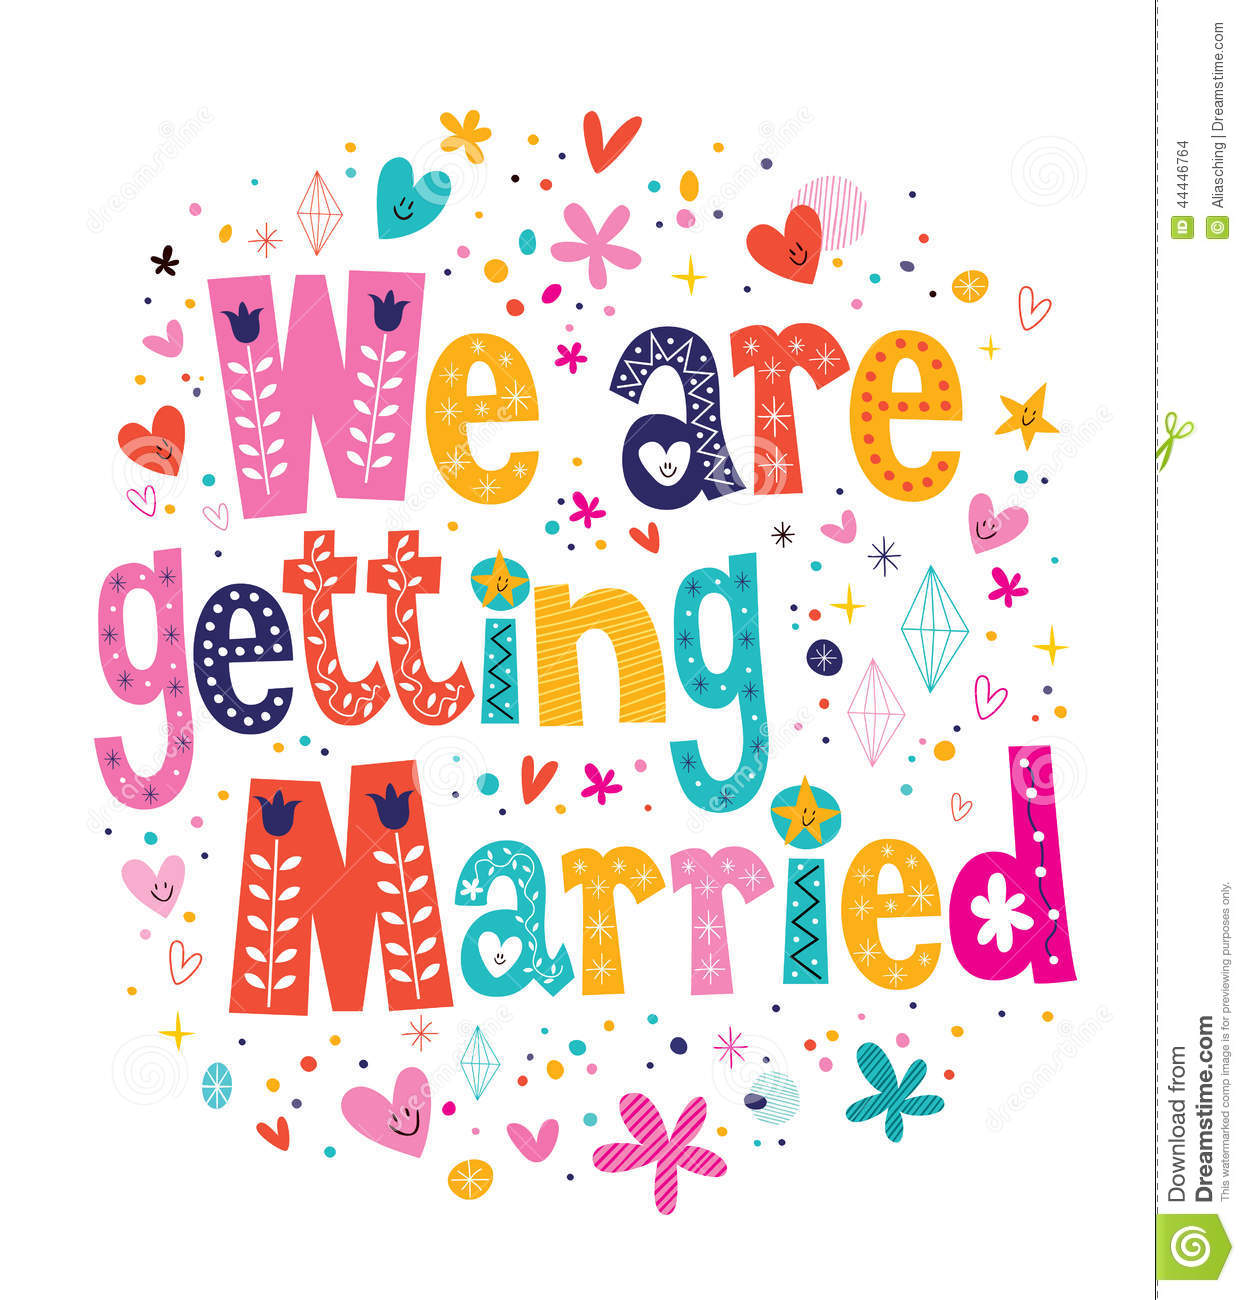 Getting married after short time dating